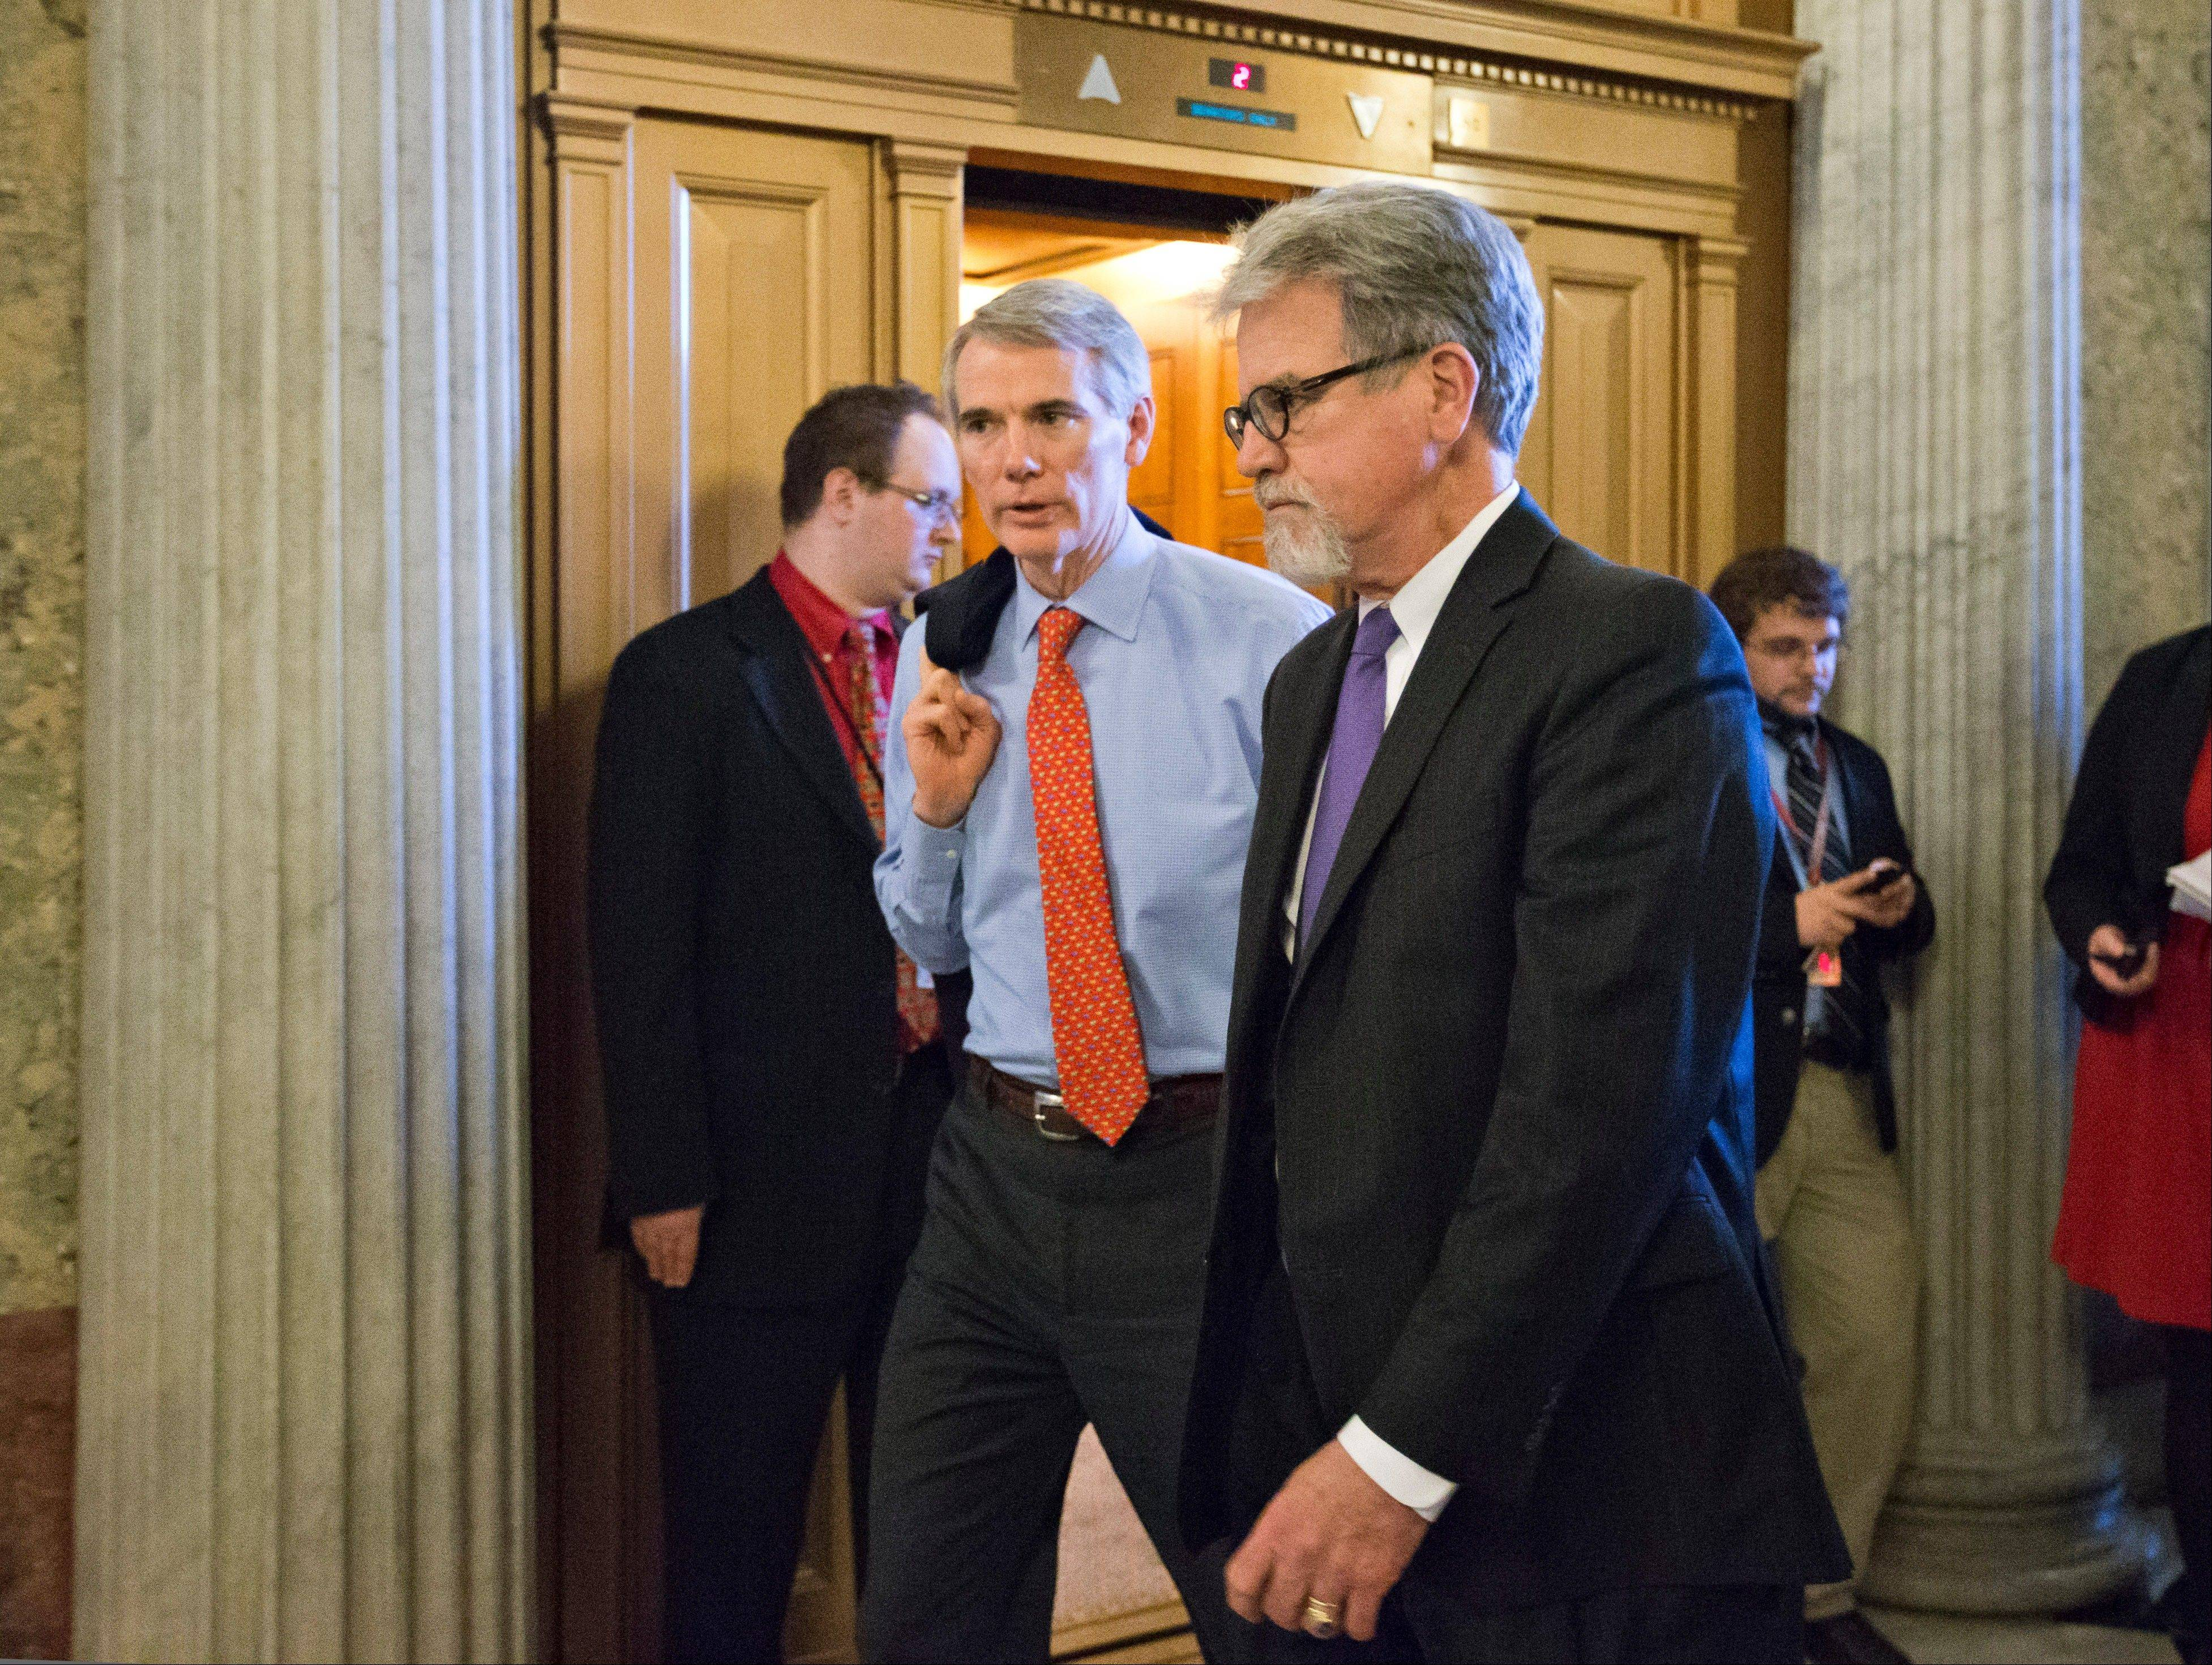 Sen. Tom Coburn, R-Okla., right, and Sen. Rob Portman, R-Ohio, left, arrive for the vote to end debate on the nomination of former GOP senator Chuck Hagel as the nation�s next secretary of defense, at the Capitol in Washington, Thursday, Feb. 14, 2013.